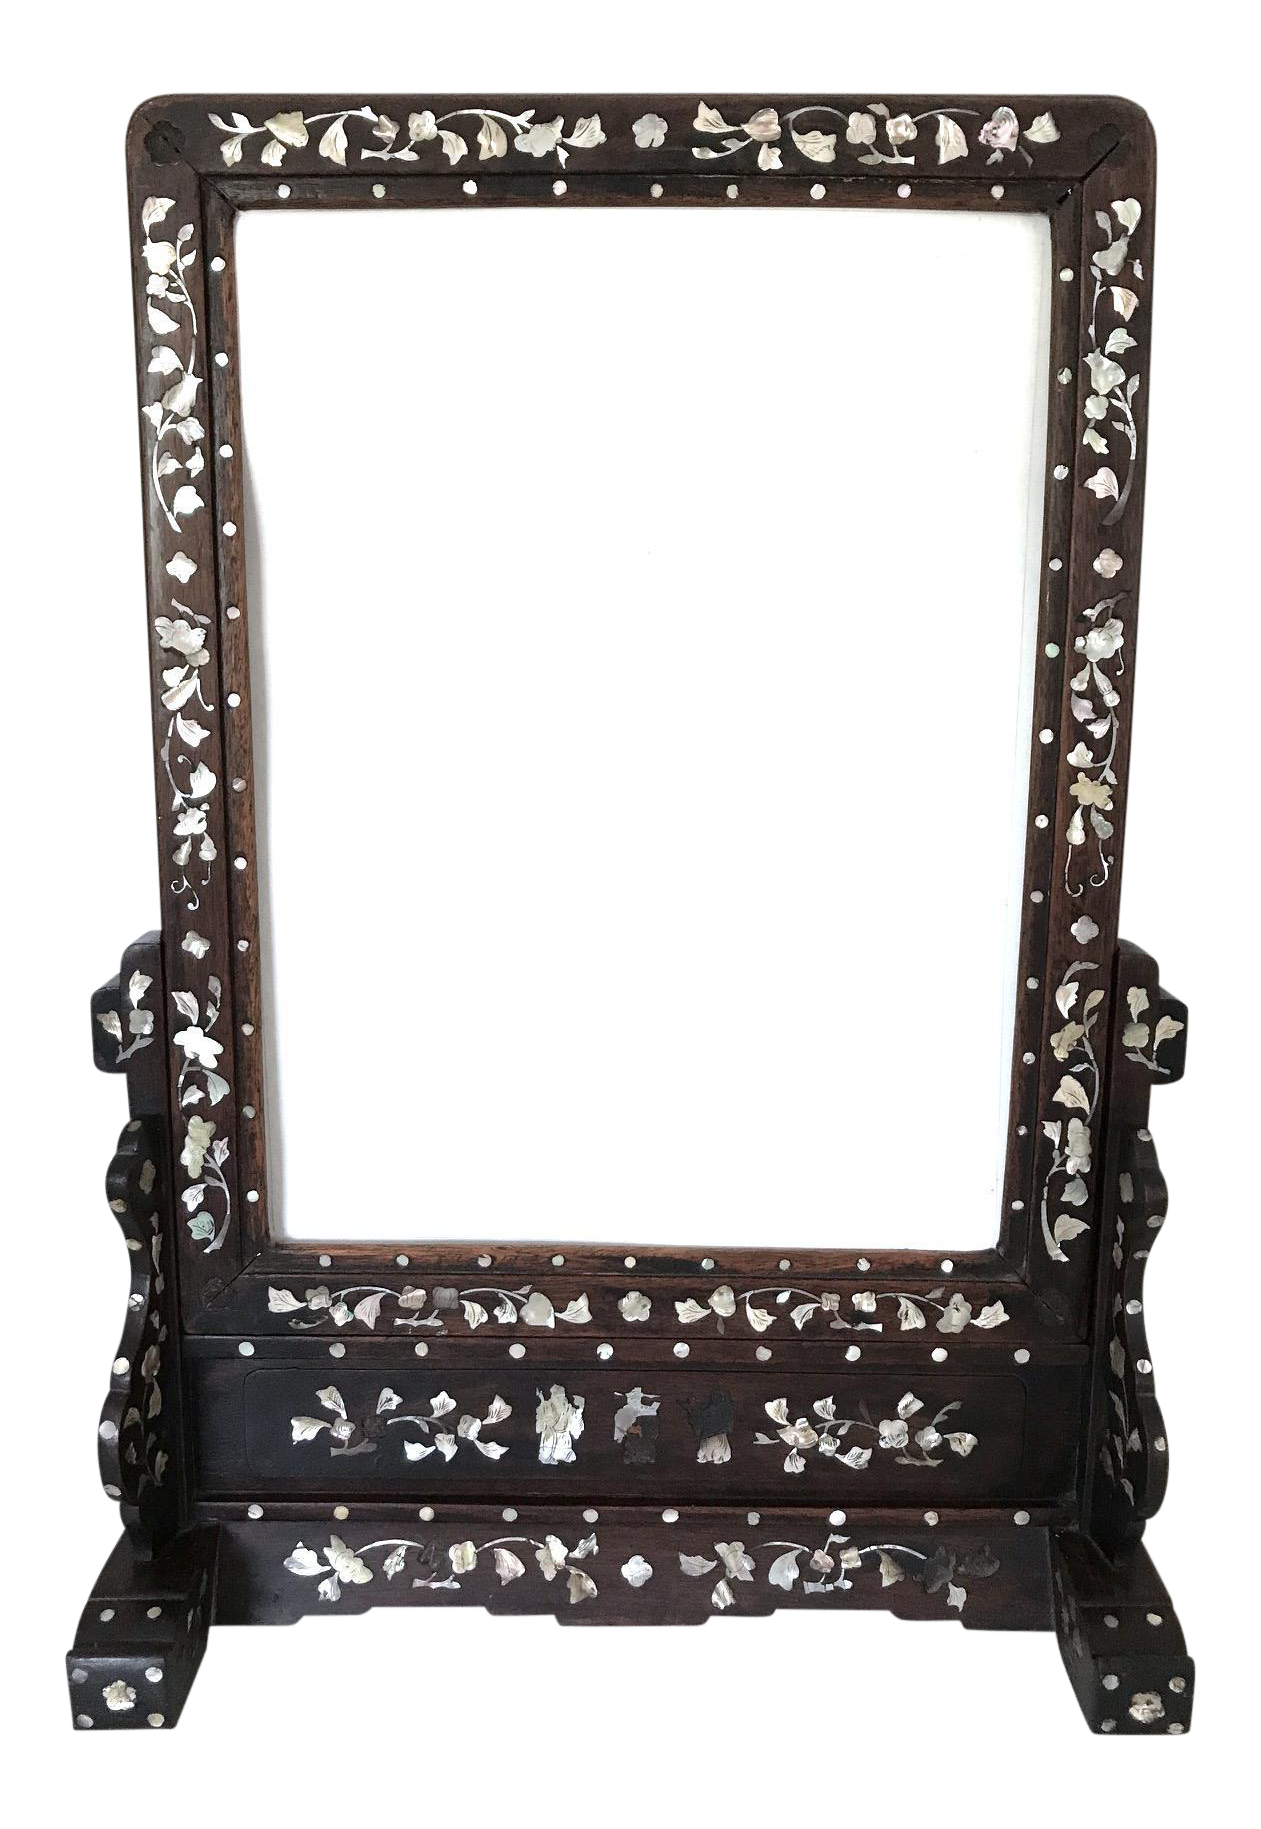 Antique Inlaid Chinese Rosewood Table Screen Or Vanity Mirror On  Chairish.com